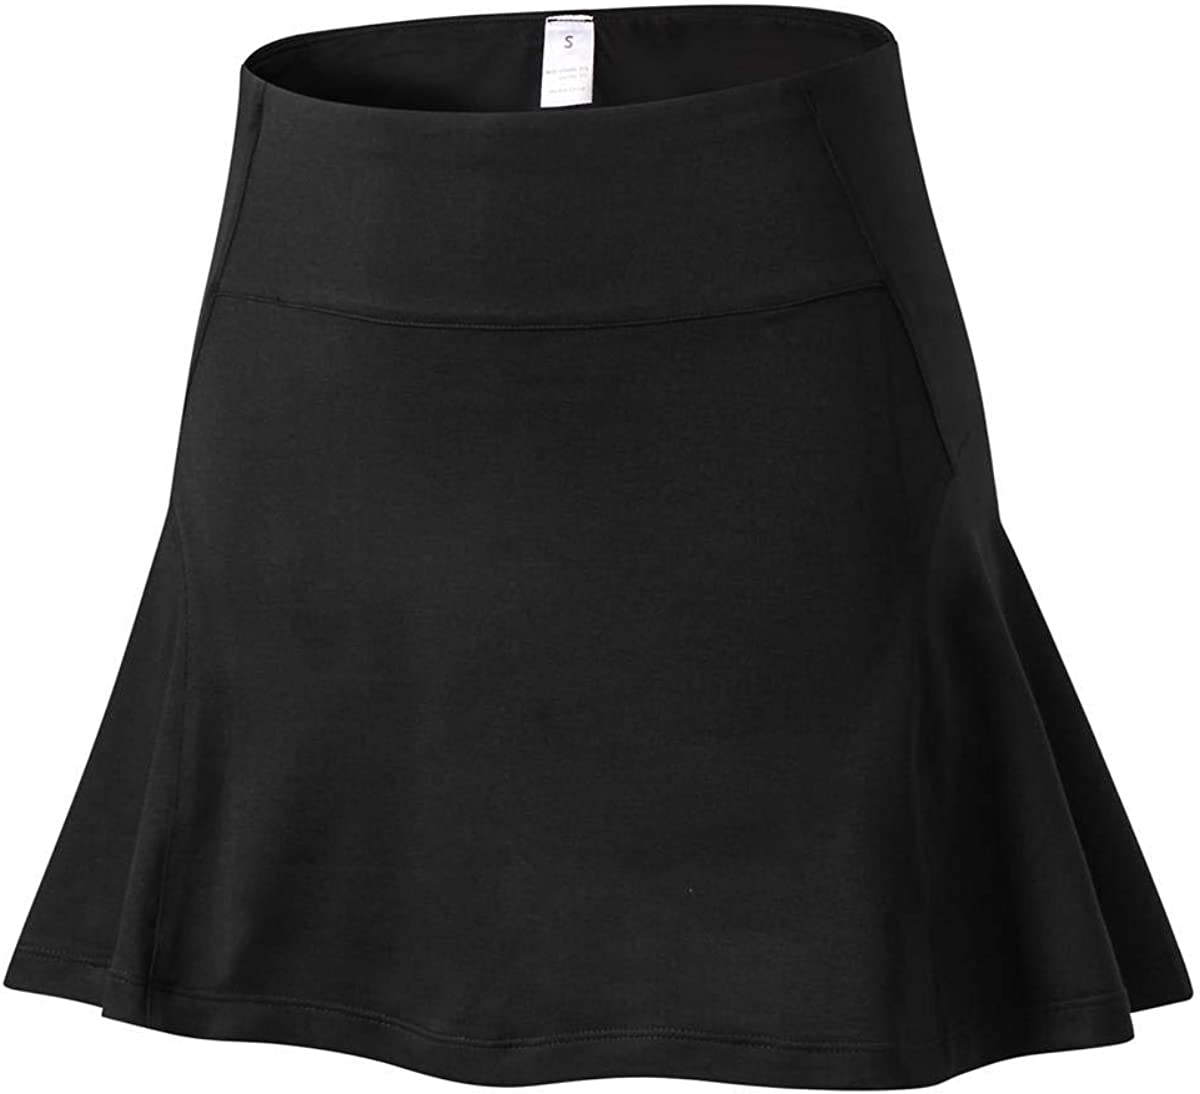 Max 59% OFF YAJIANMEI Tennis Skirts for Women Shorts Pockets Directly managed store G Athletic with